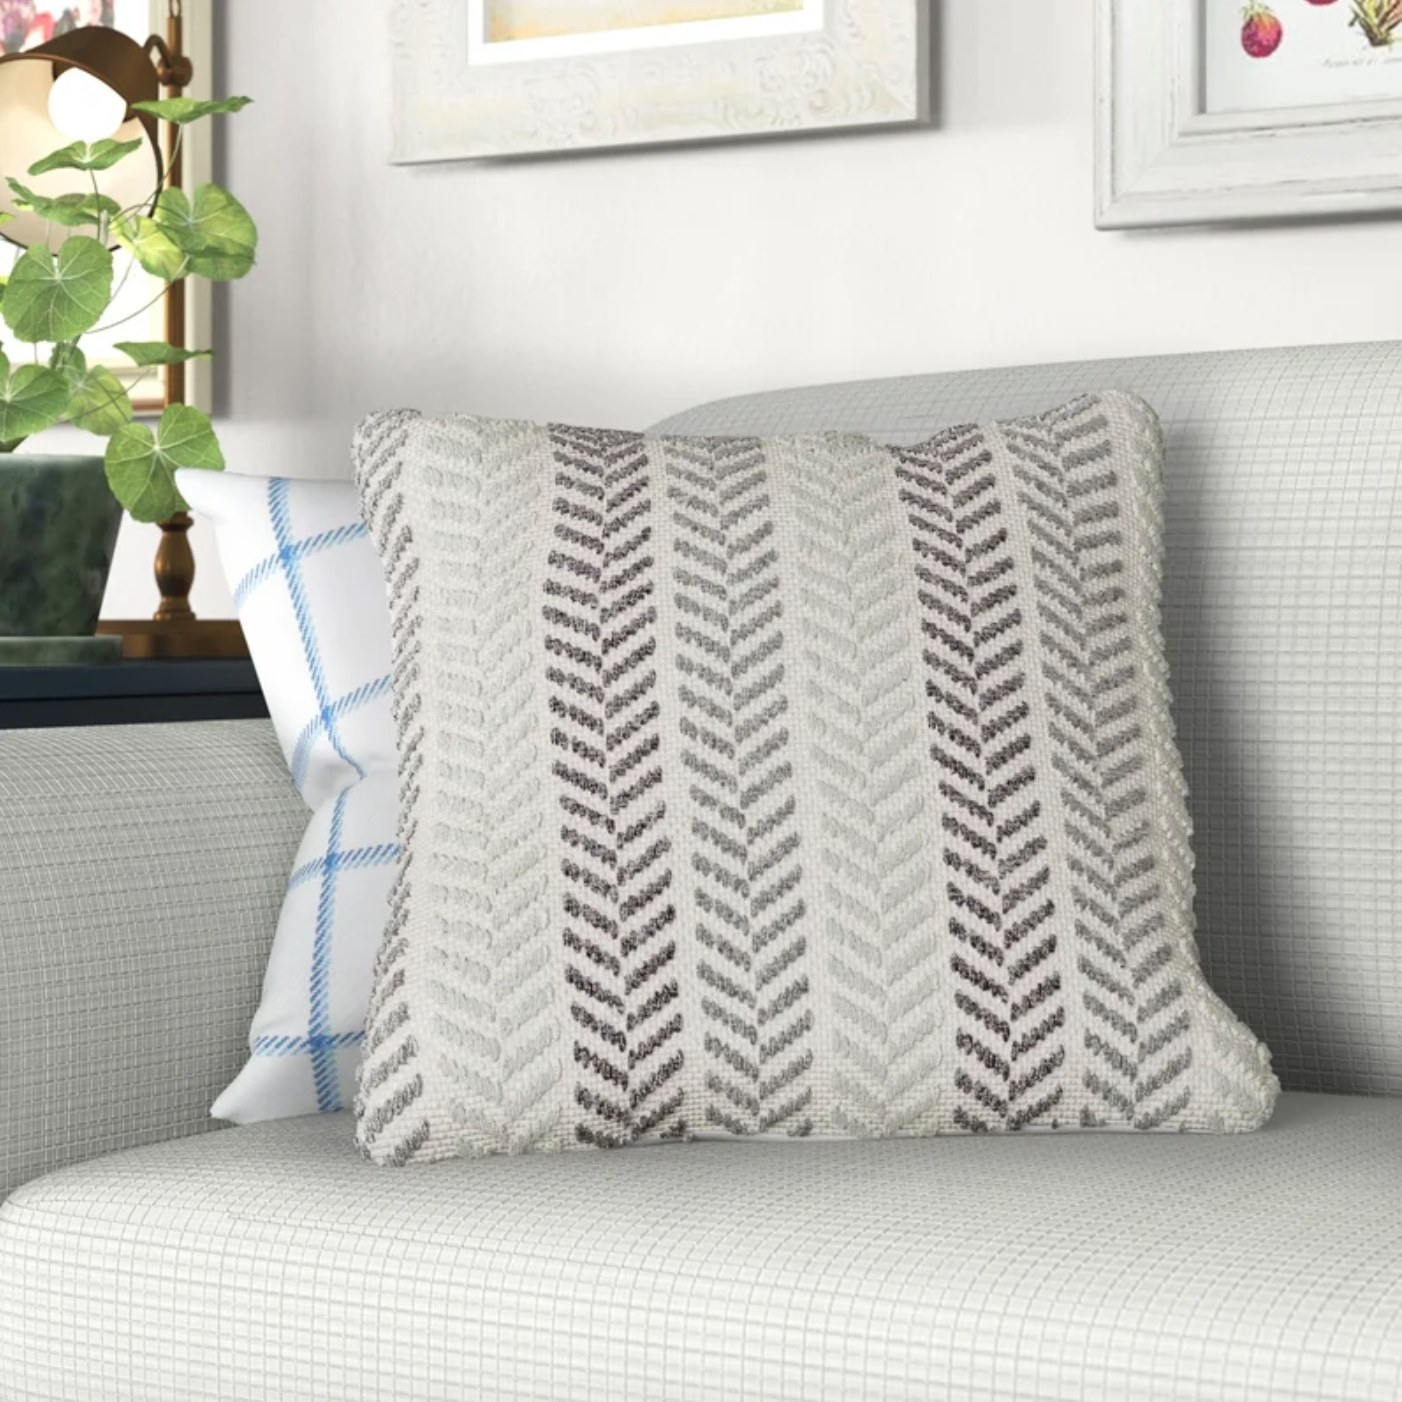 The cotton pillow cover and insert in gray